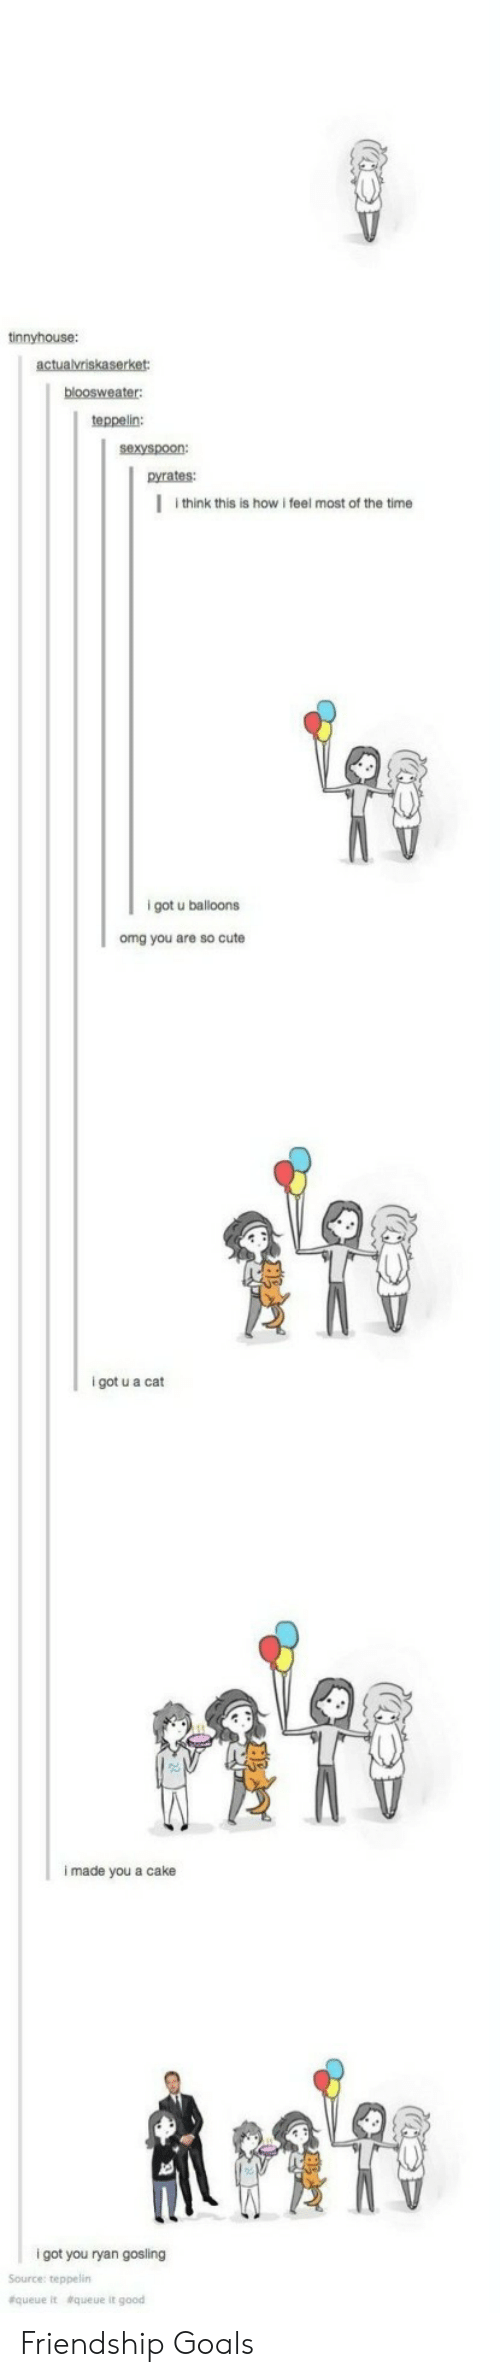 Friendship Goals: tinnyhouse:  teppelin:  sexyspoon:  pyrates:  I think this is how i feel most of the time  9  igot u balloons  omg you are so cute  i got u a cat  i made you a cake  i got you ryan gosling  Source: teppelin  &queue  &queue it good Friendship Goals